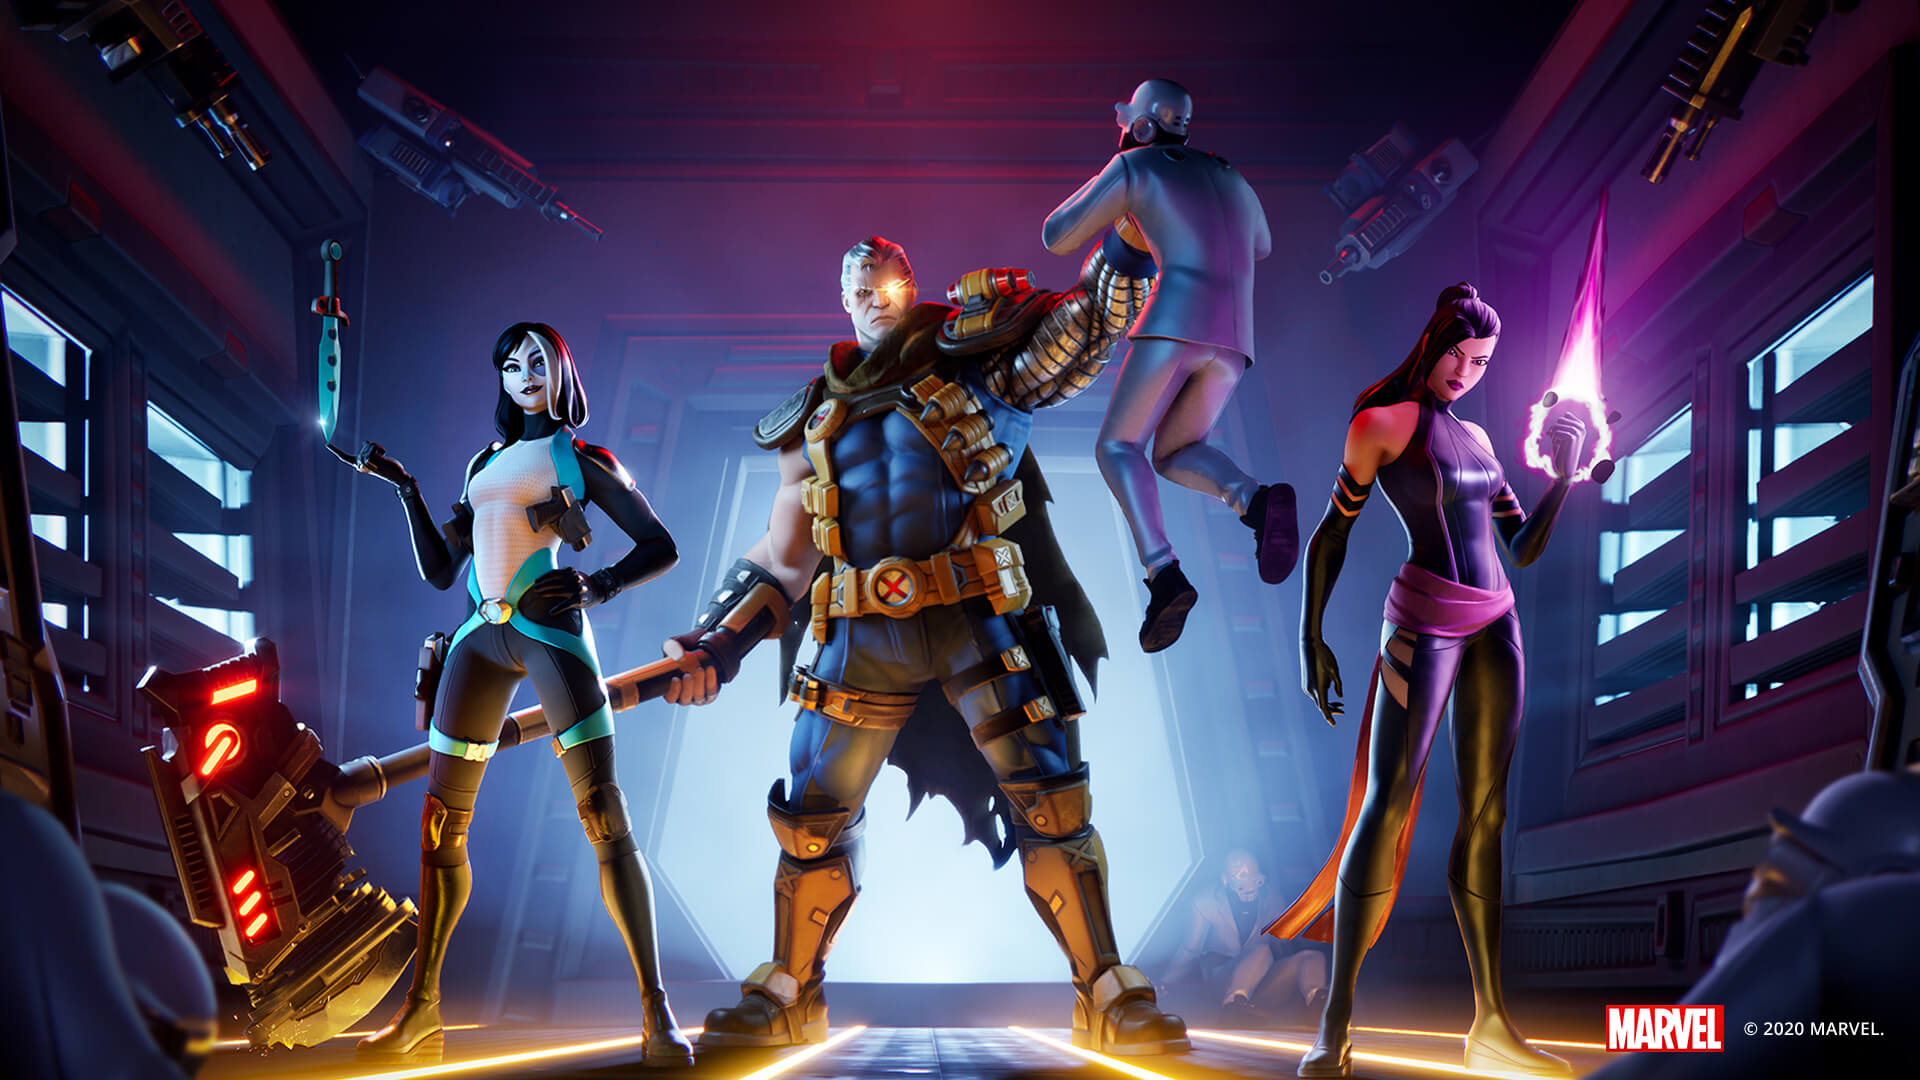 Cable, Psylocke and Domino Join Deadpool in Fornite - X-Force